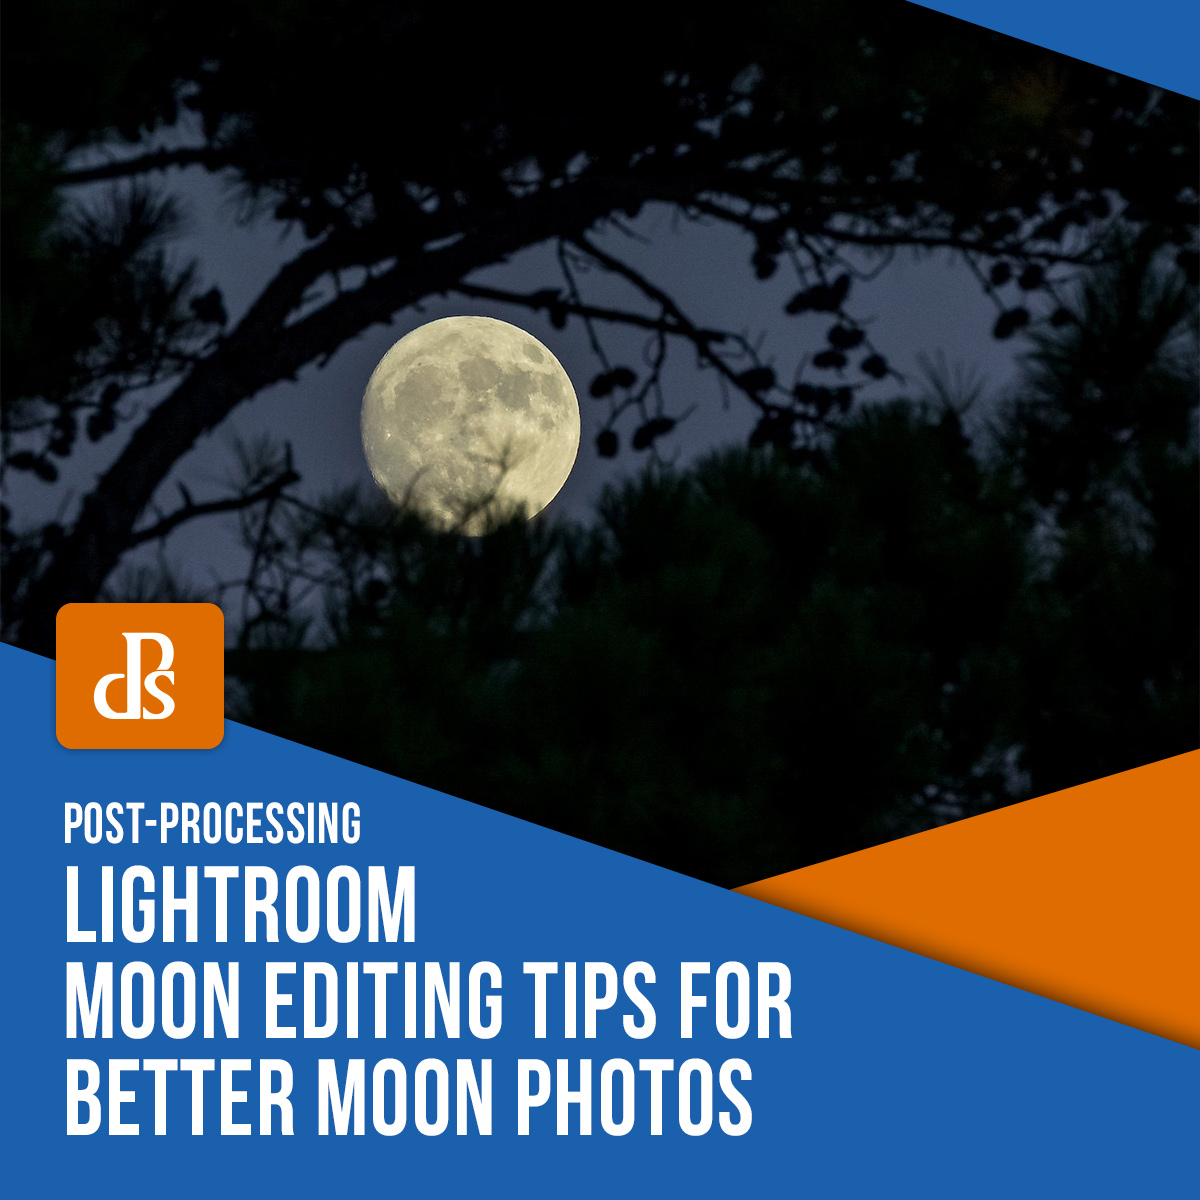 dps-lightroom-moon-editing-tips